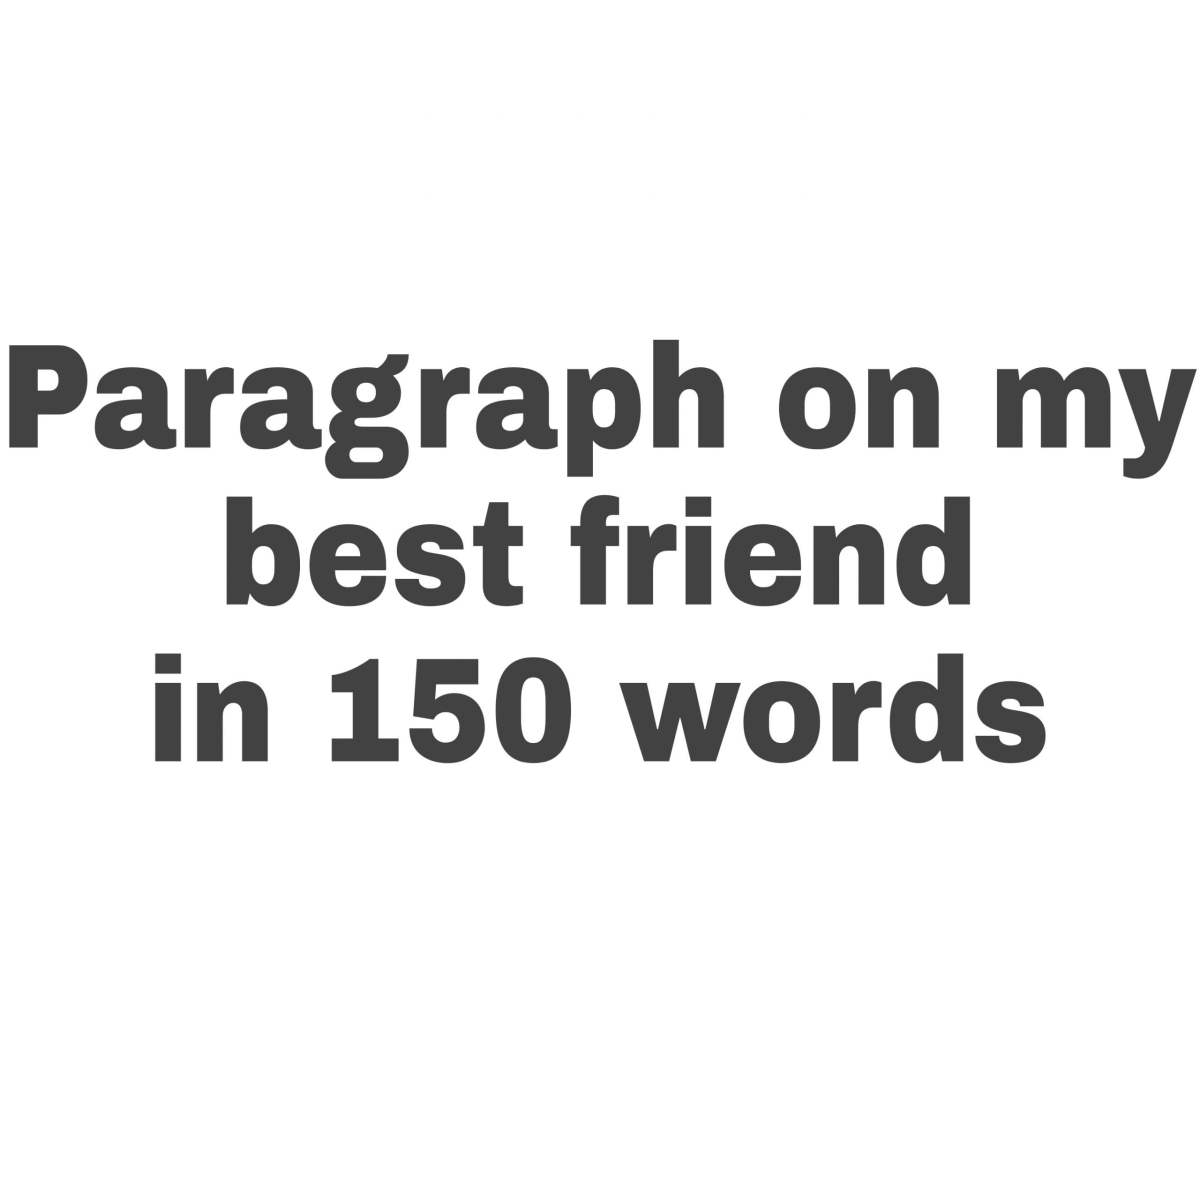 Paragraph on my best friend in 150 words